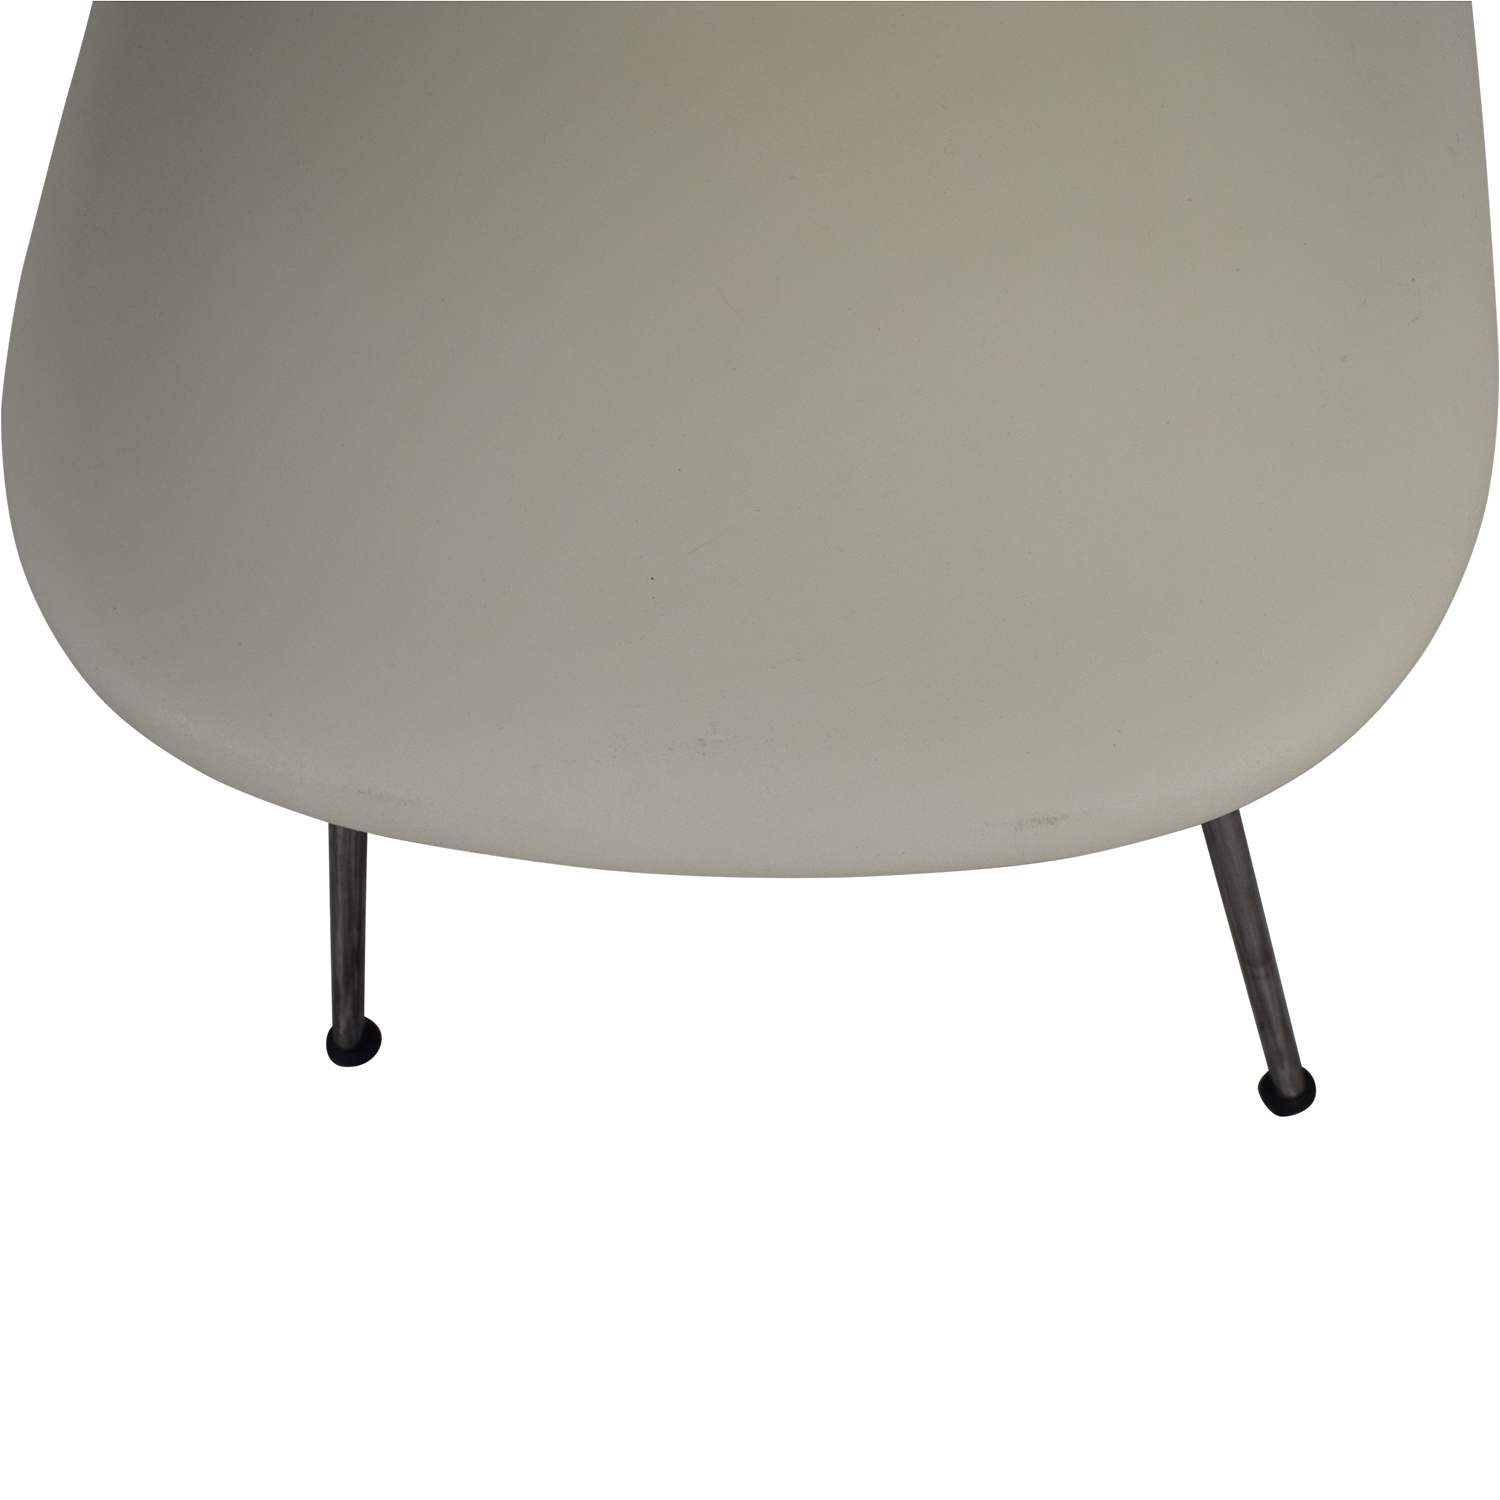 buy Design Within Reach Eames Molded Plastic 4 Leg Side Chair Design Within Reach Dining Chairs